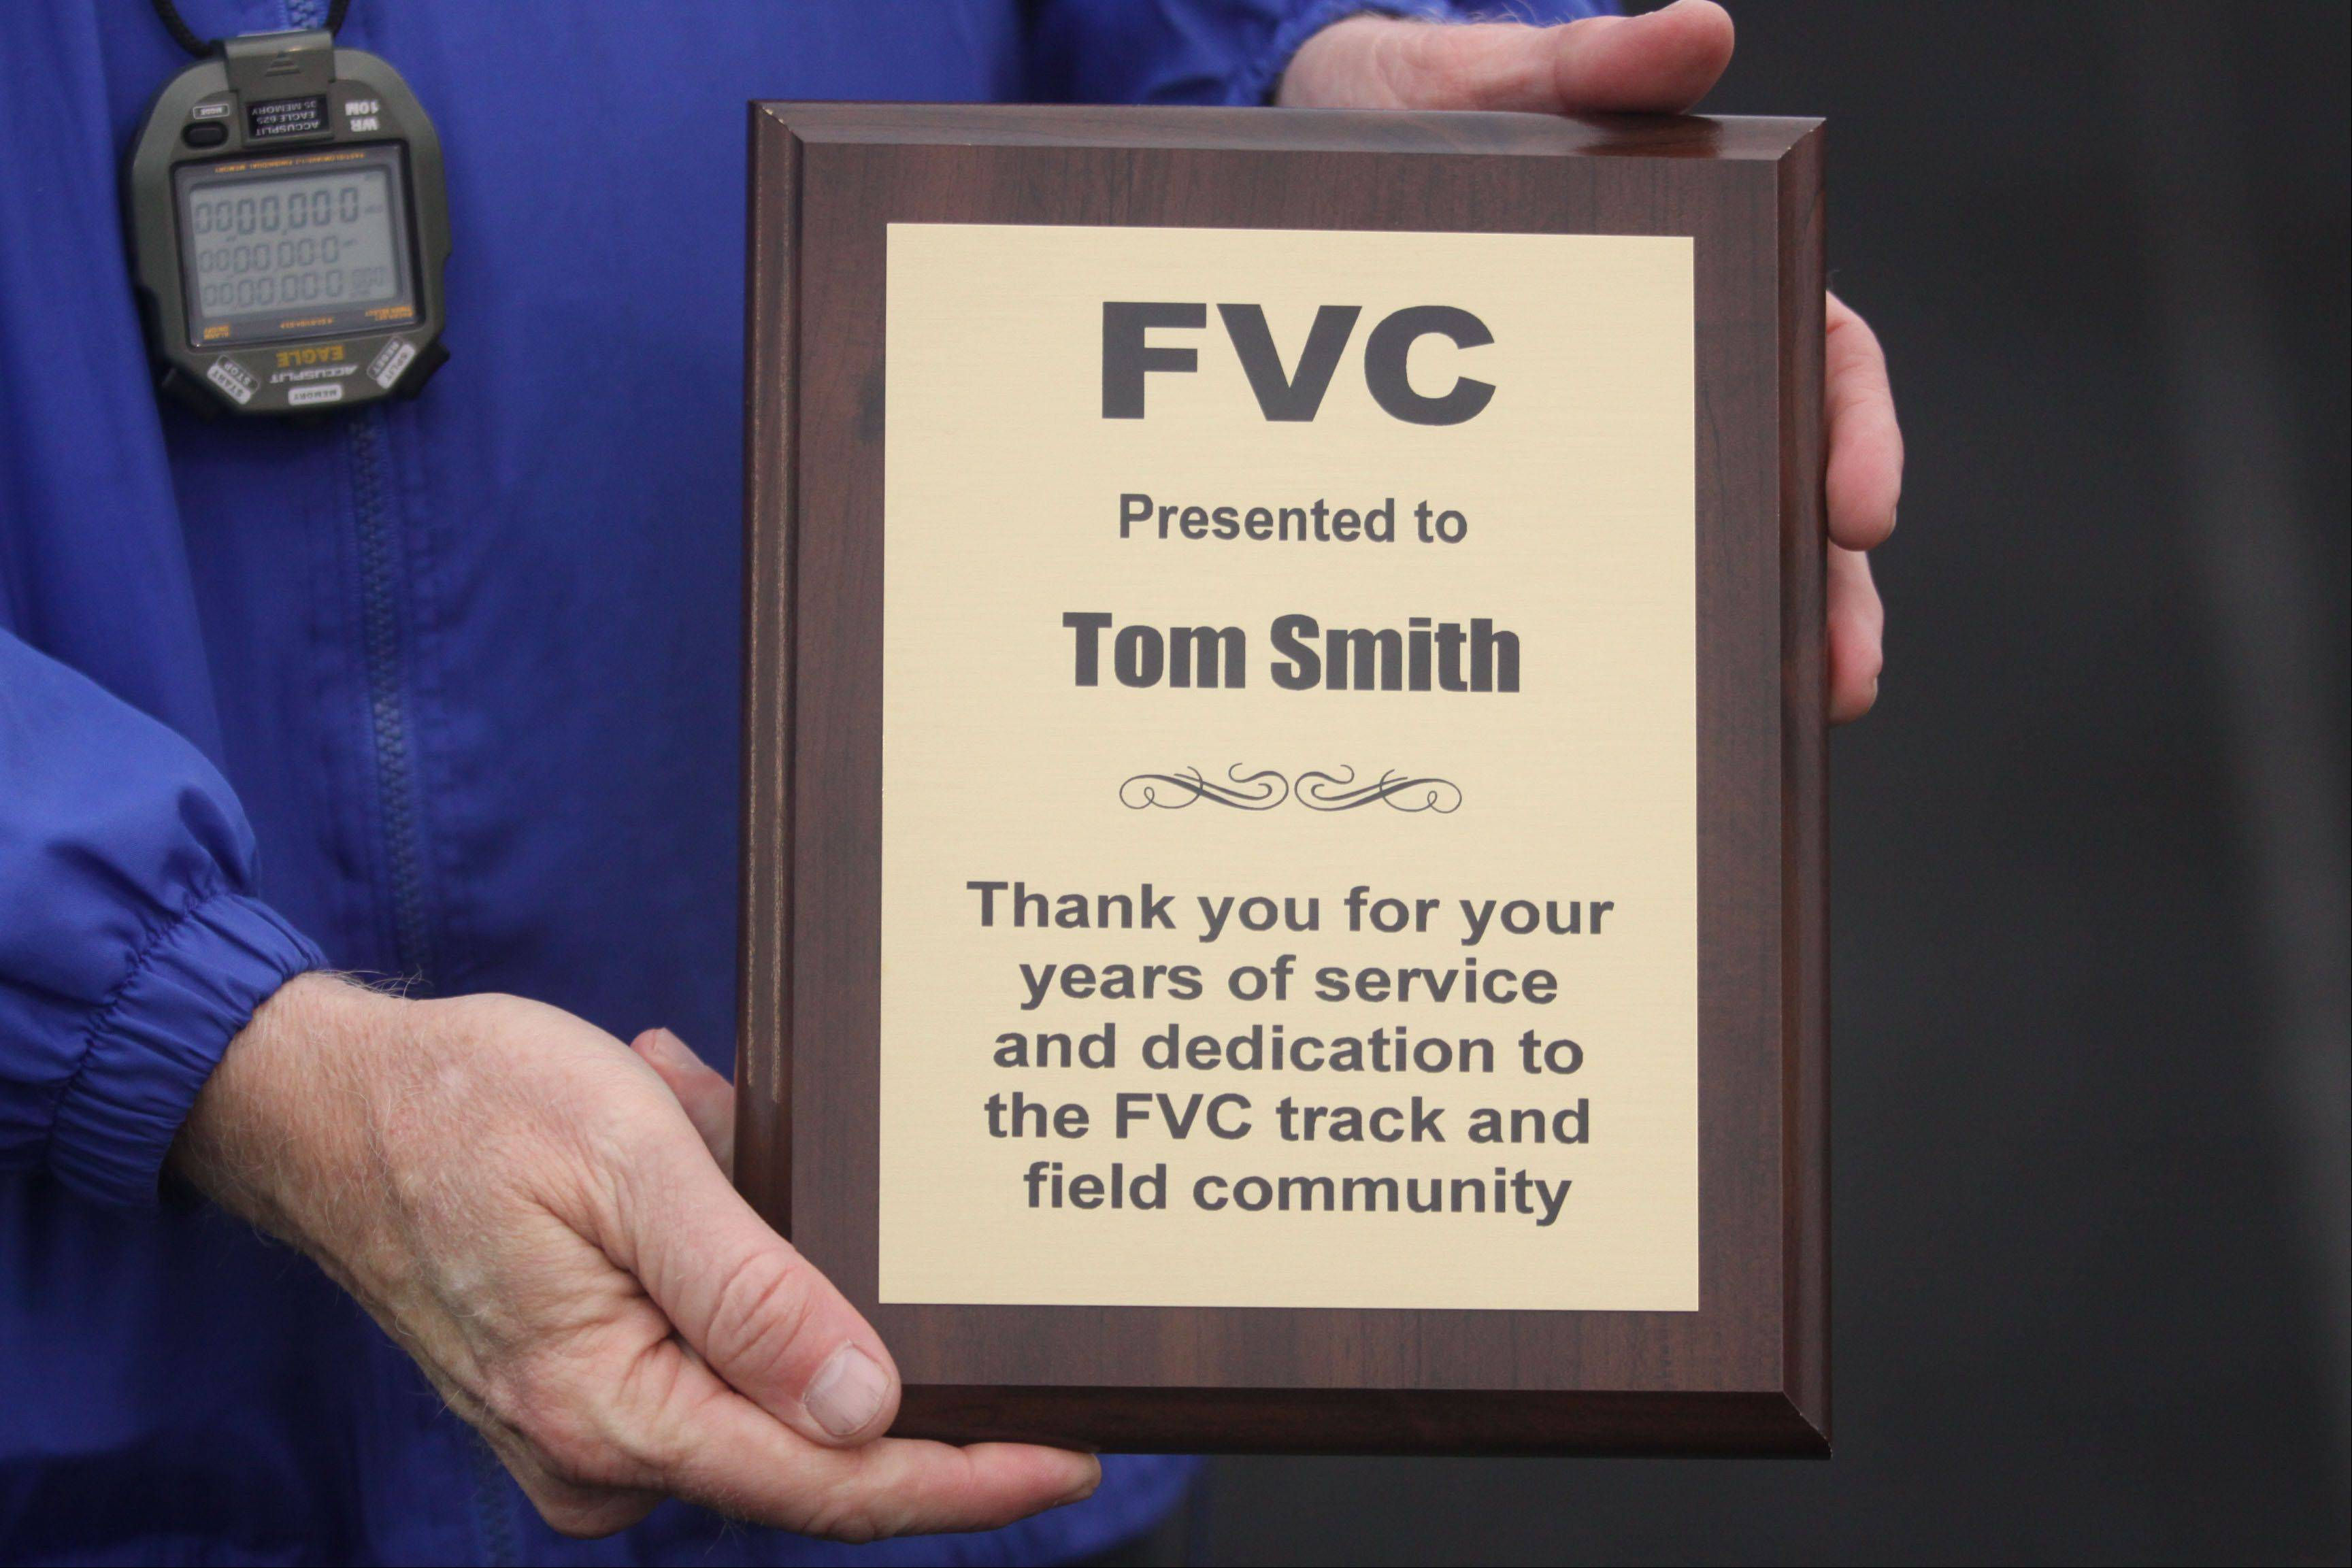 Longtime Dundee-Crown coach Tom Smith was recognized for his many years of service during the Fox Valley Conference Boys Track & Field Championships at Al Bohrer Field on the campus of Cary-Grove High School Friday night. McHenry coach Dave D'Angelo presented Smith with this plaque for the occasion.